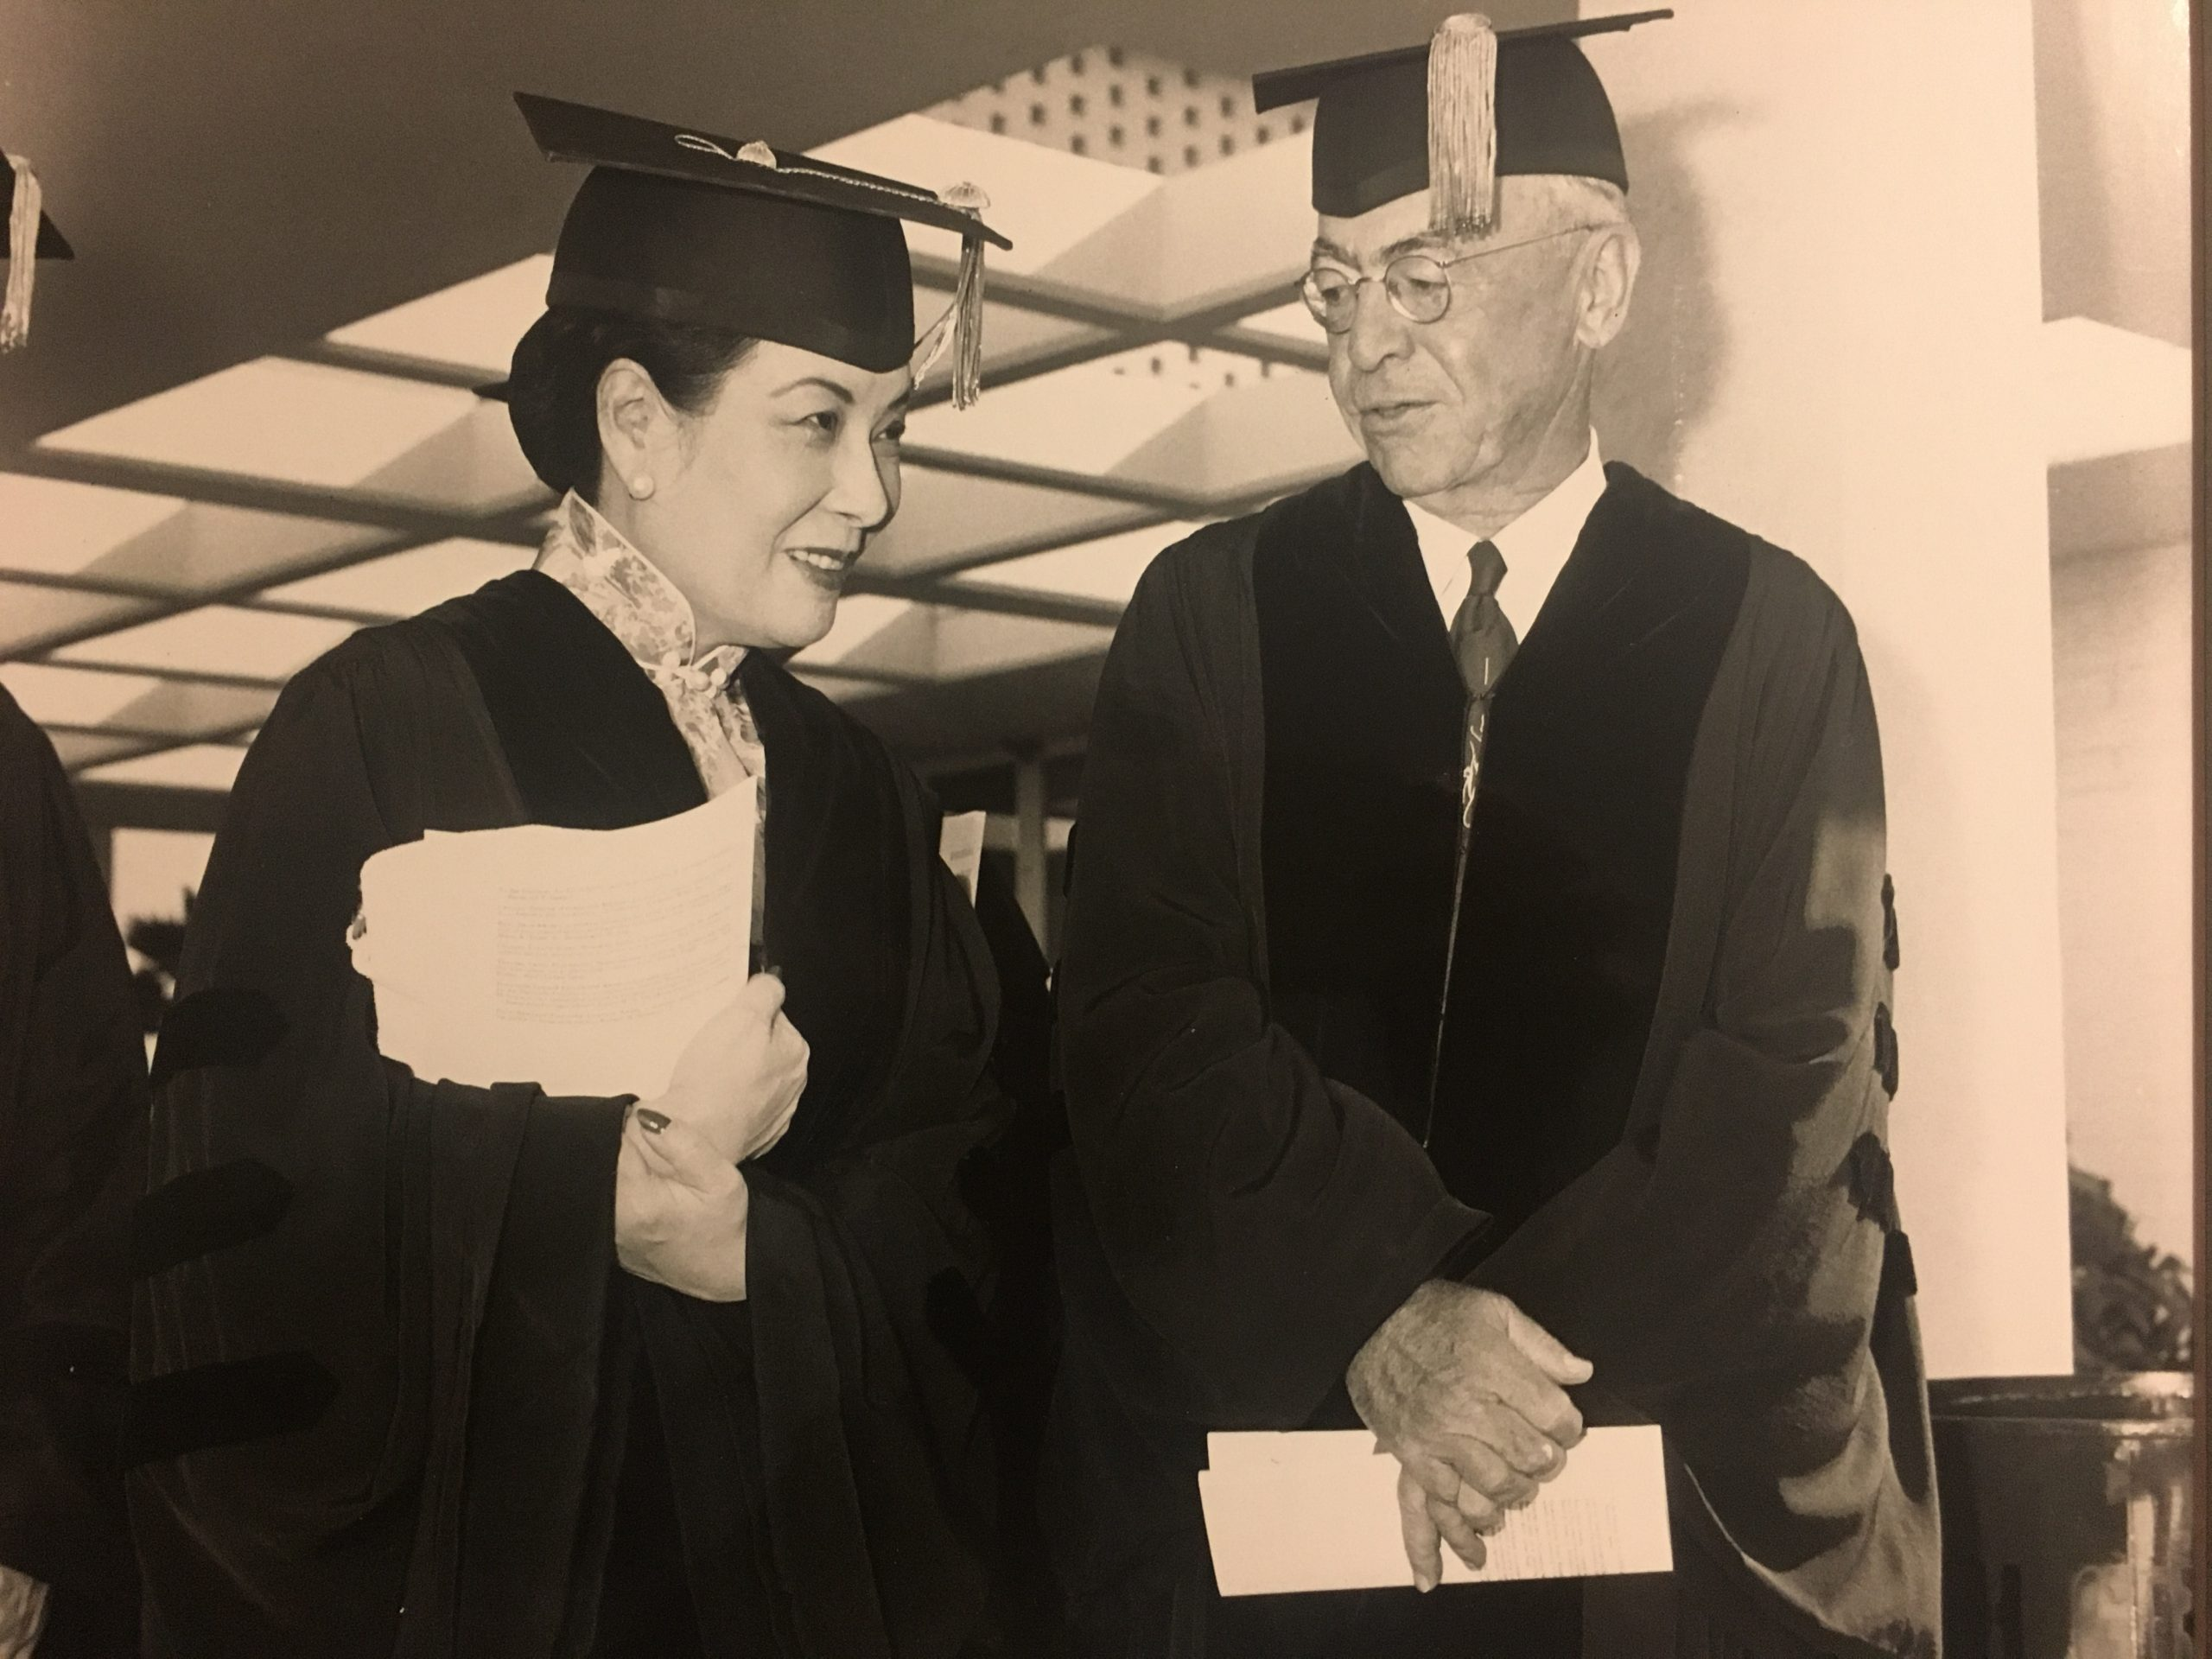 Inspiring Women of Asia Exhibit - Madame Chiang Kai Shek in Graduation Attire